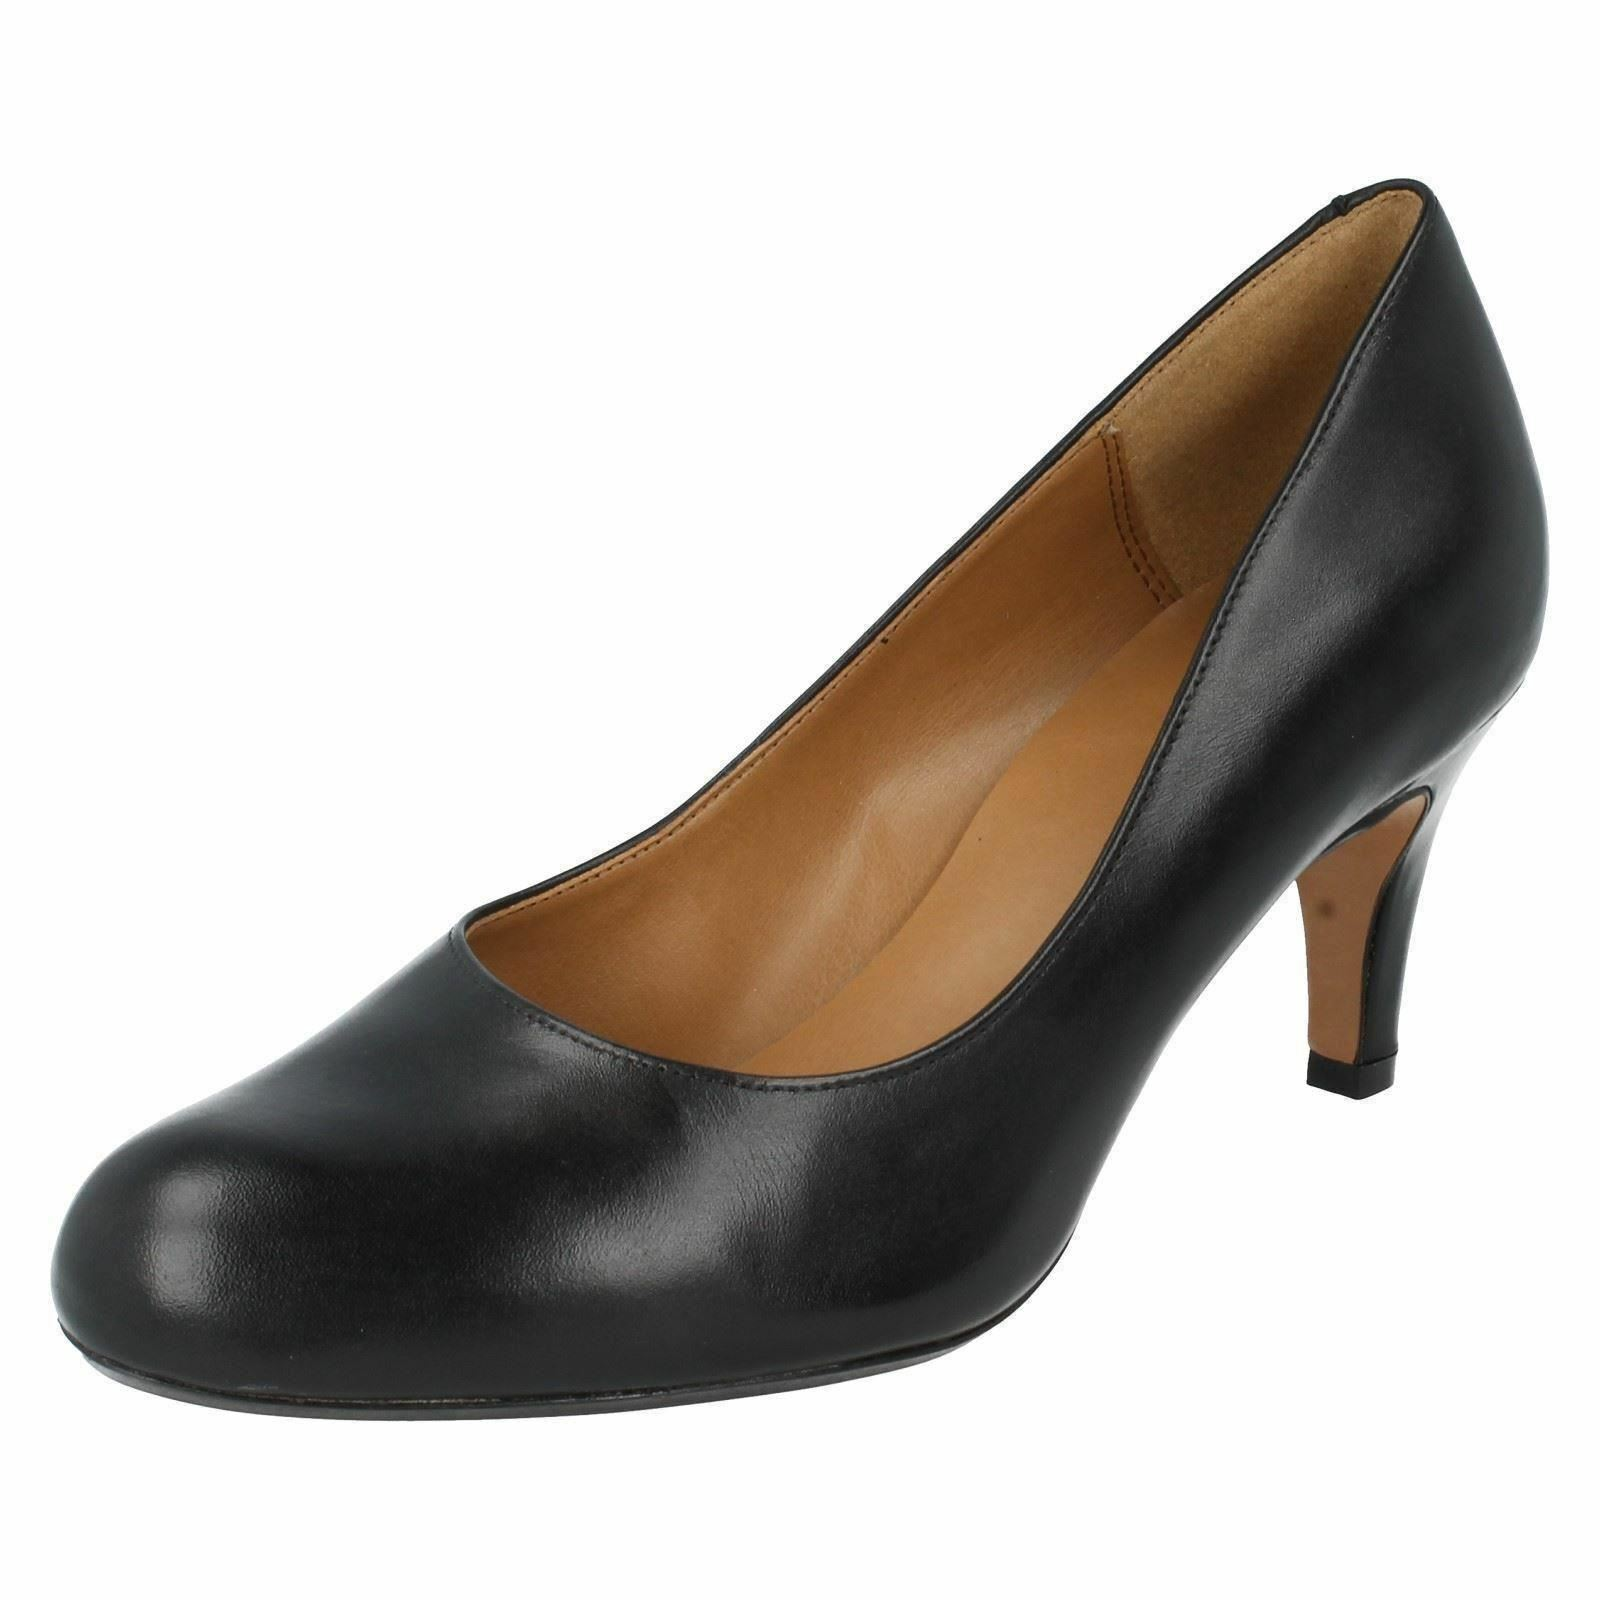 Clarks Ladies Black Black Black Leather shoes 'Arista Abe' 81d27d